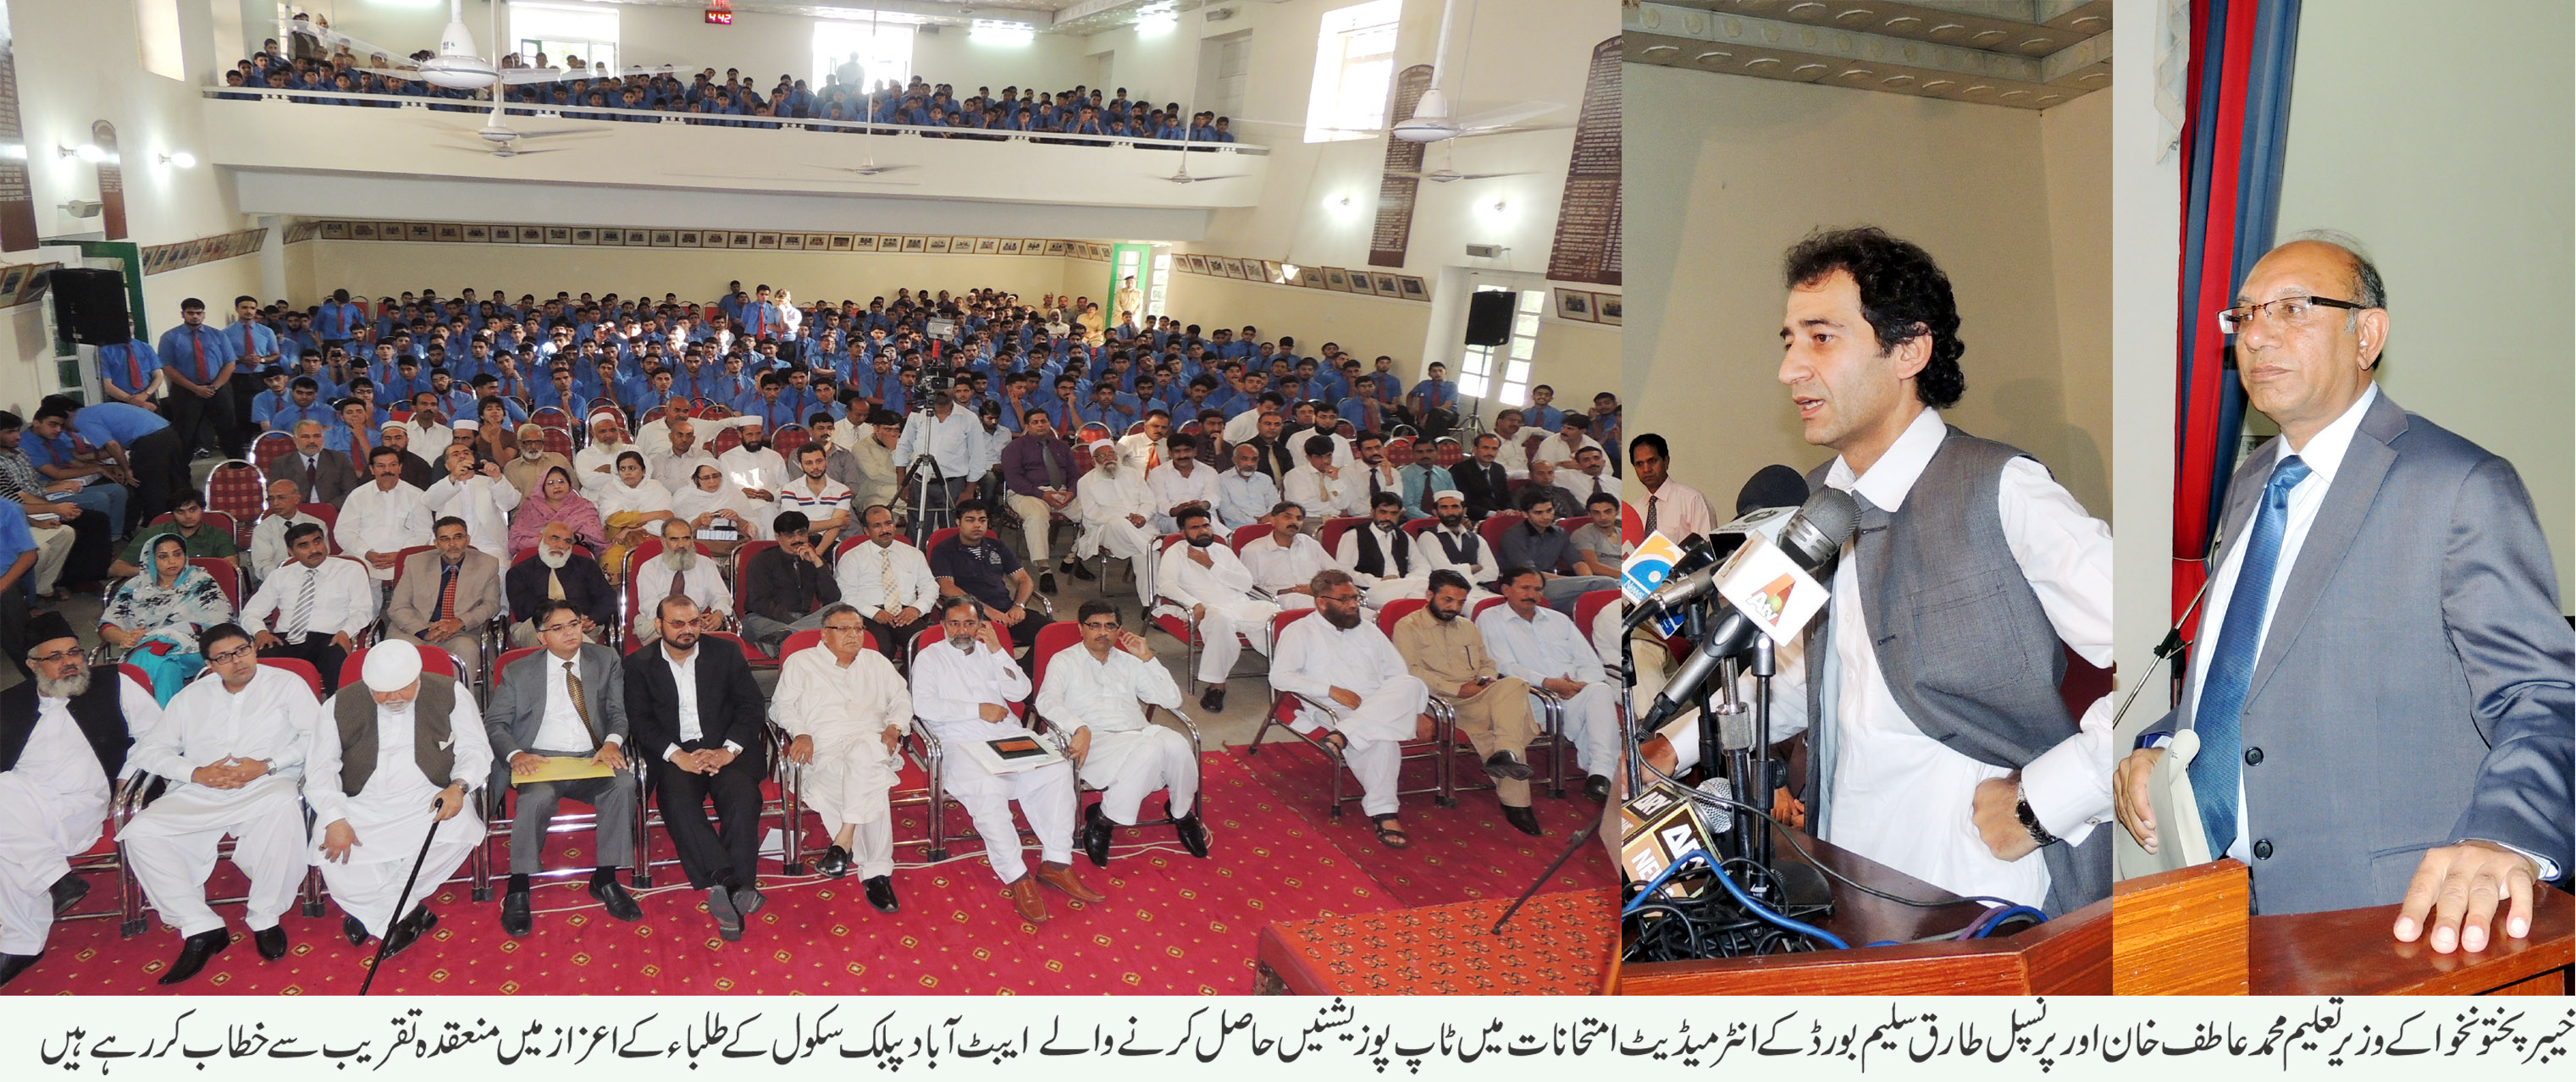 PHOTO MINISTER FOR EDUACTION KPK ADDRESSING AT APS SCHOOL ABBOTTABAD